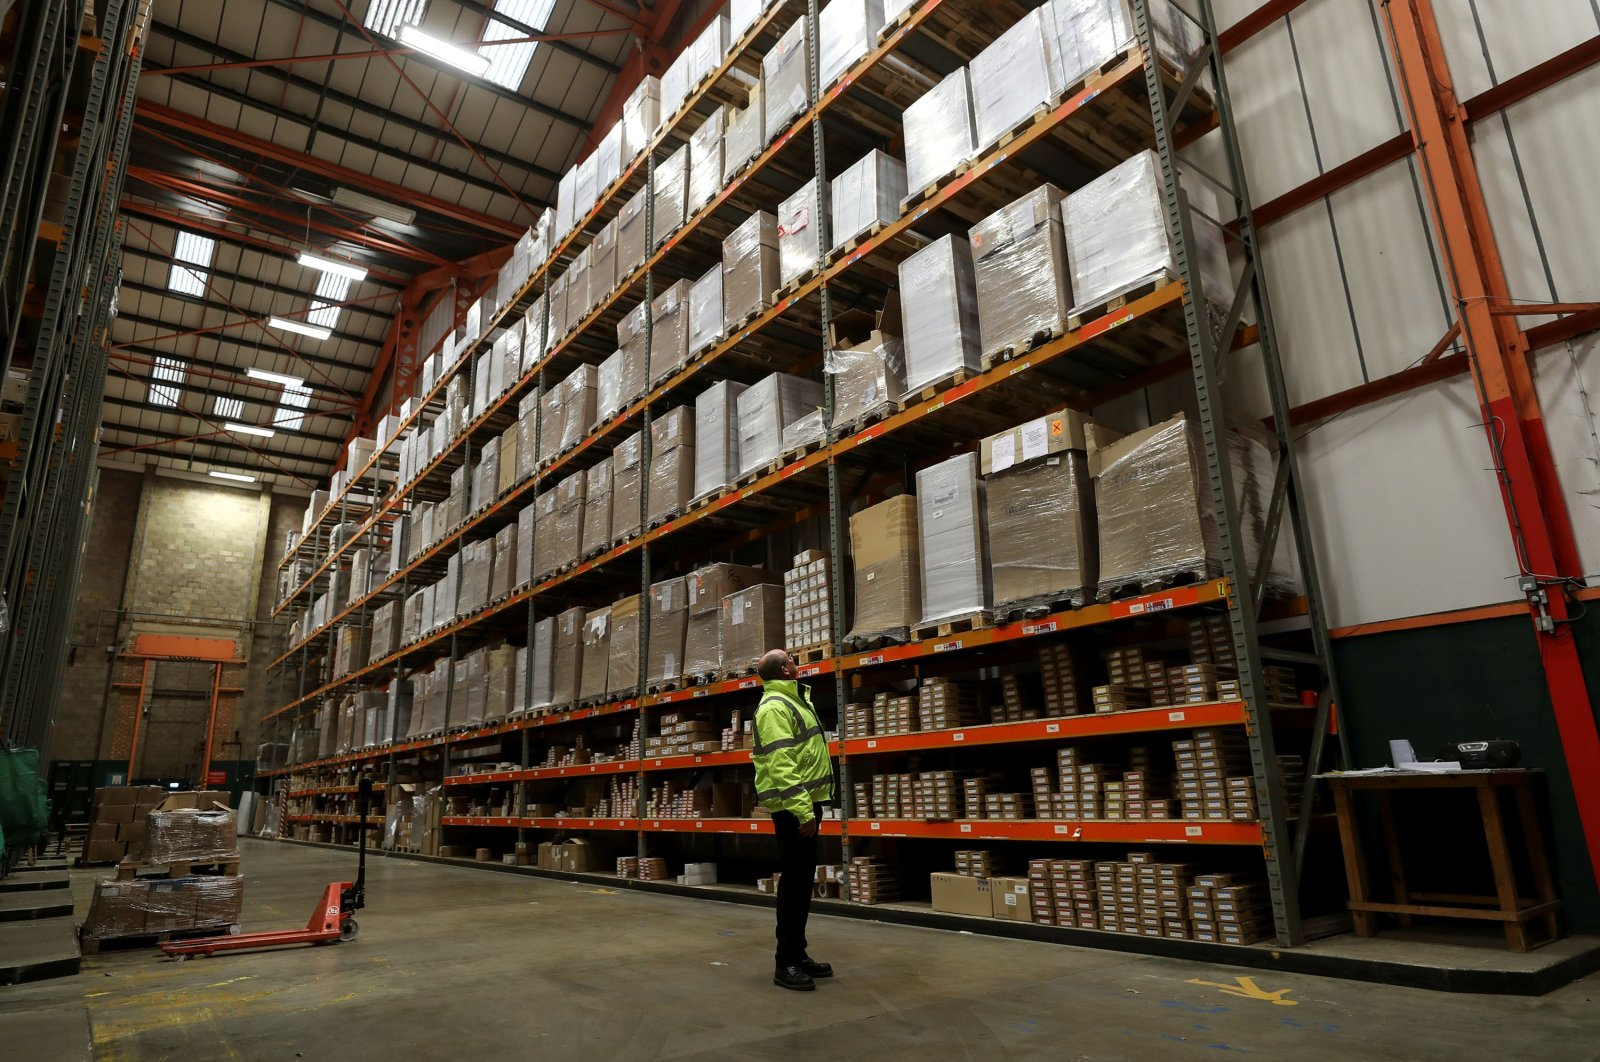 An employee looks up at goods at the Miniclipper Logistics warehouse in Leighton Buzzard, Britain, Dec. 3, 2018. (Reuters Photo)